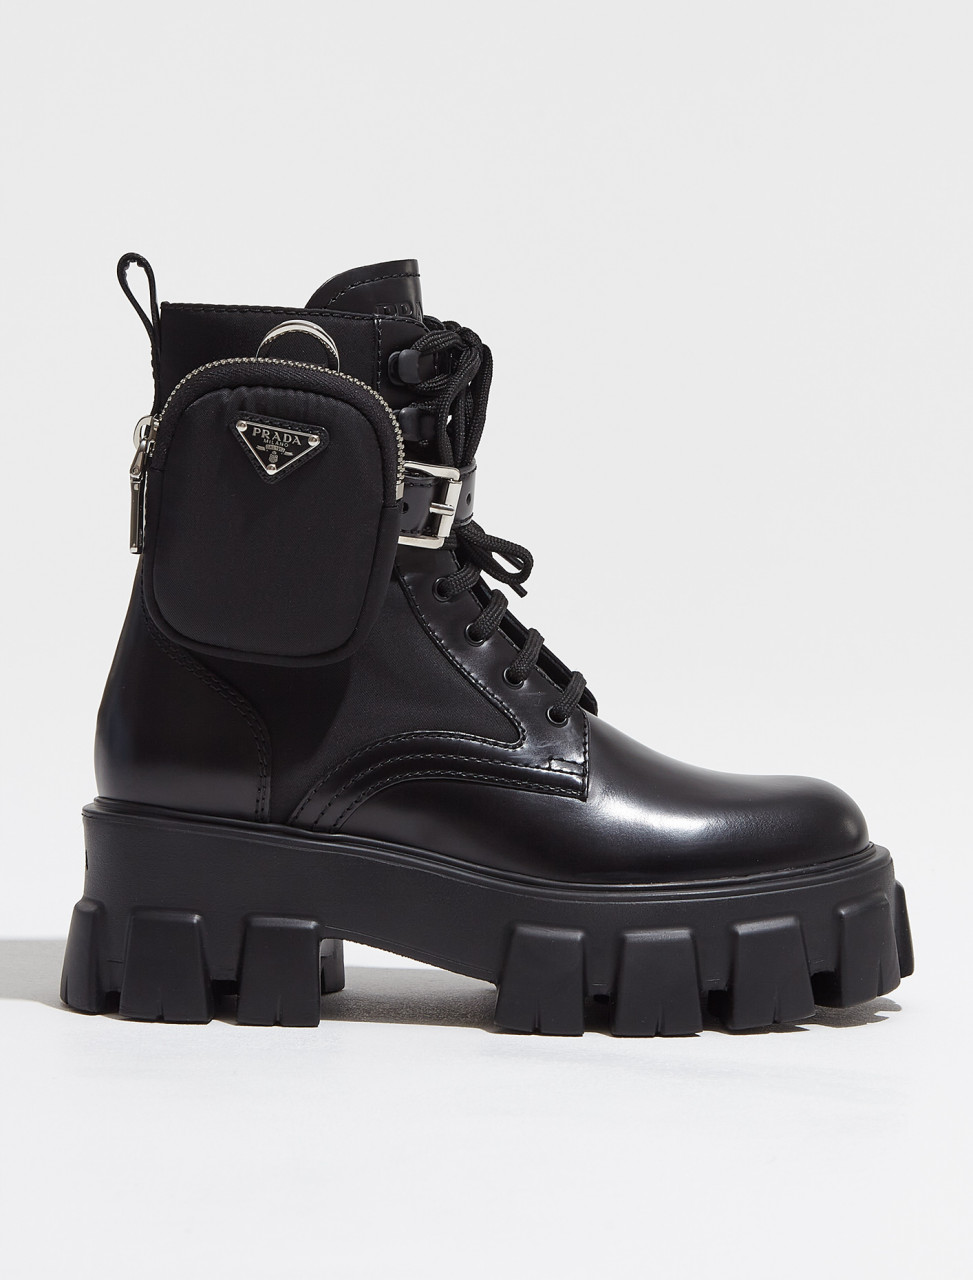 1T255M_3LFR_F0002 PRADA BRUSHED ROIS LEATHER AND NYLON MONOLITH BOOTS IN BLACK